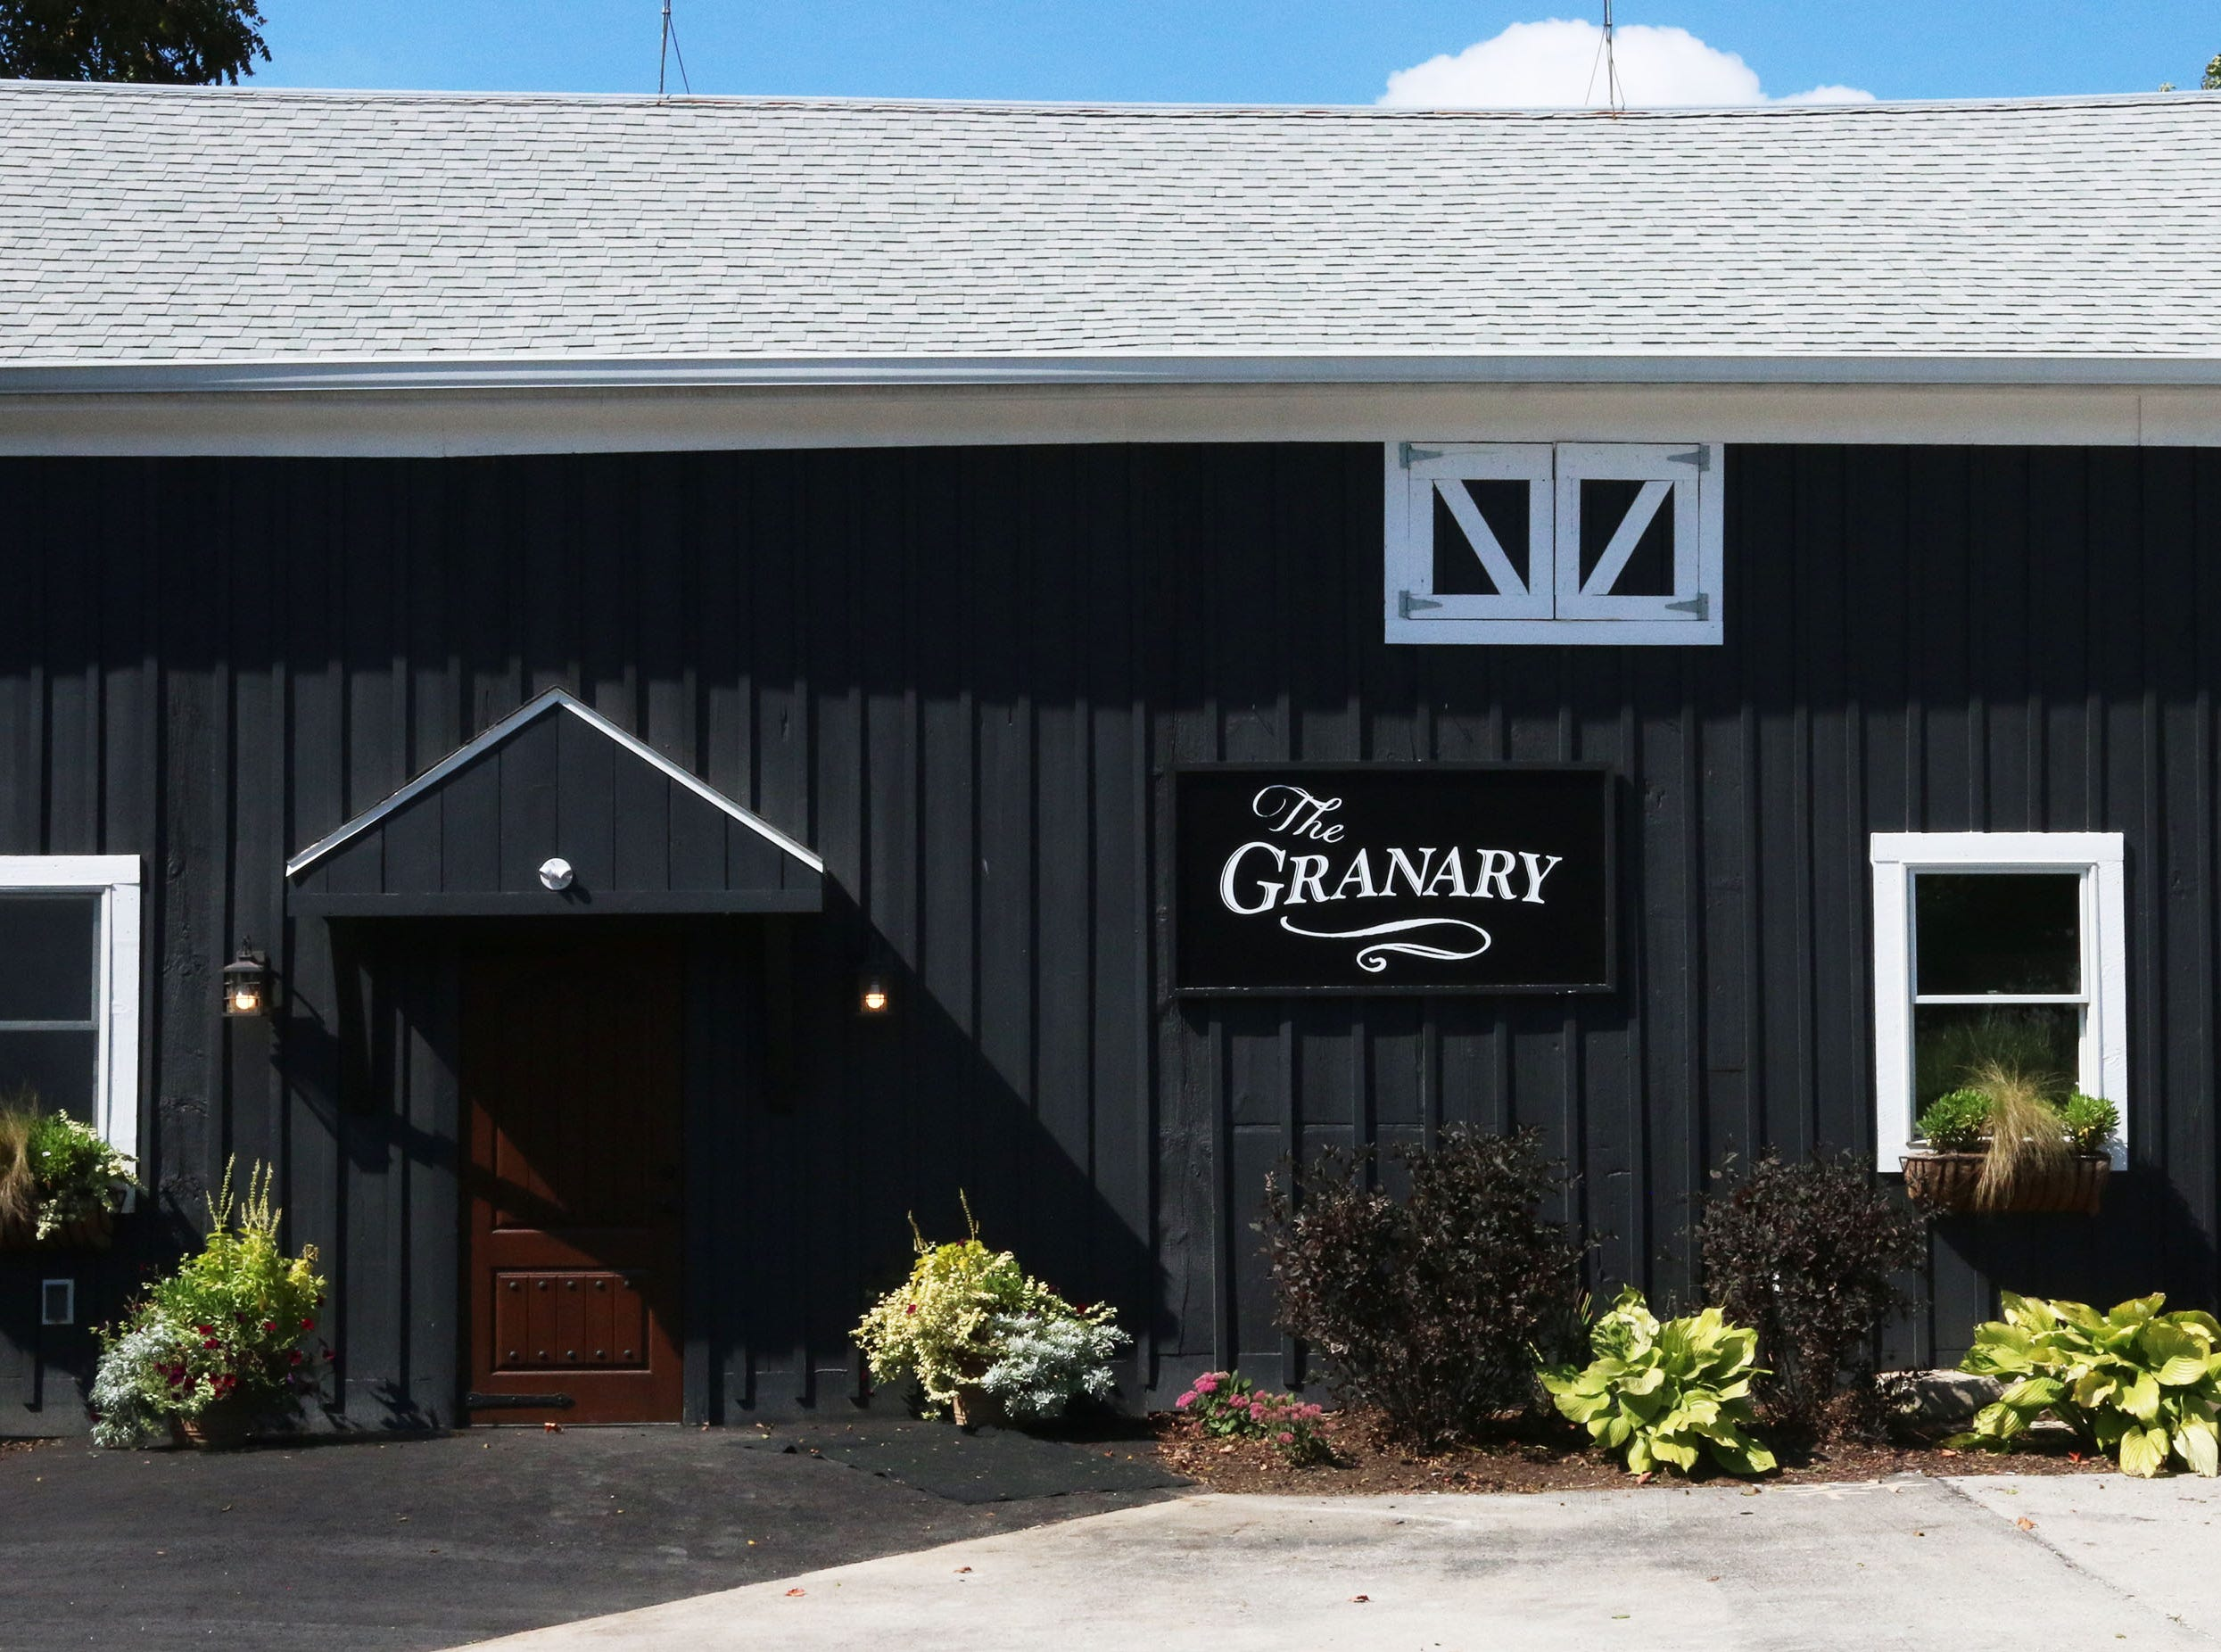 The exterior of The Granary building at The Blind Horse restaurant and winery, Thursday, September 13, 2018, in Kohler, Wis.